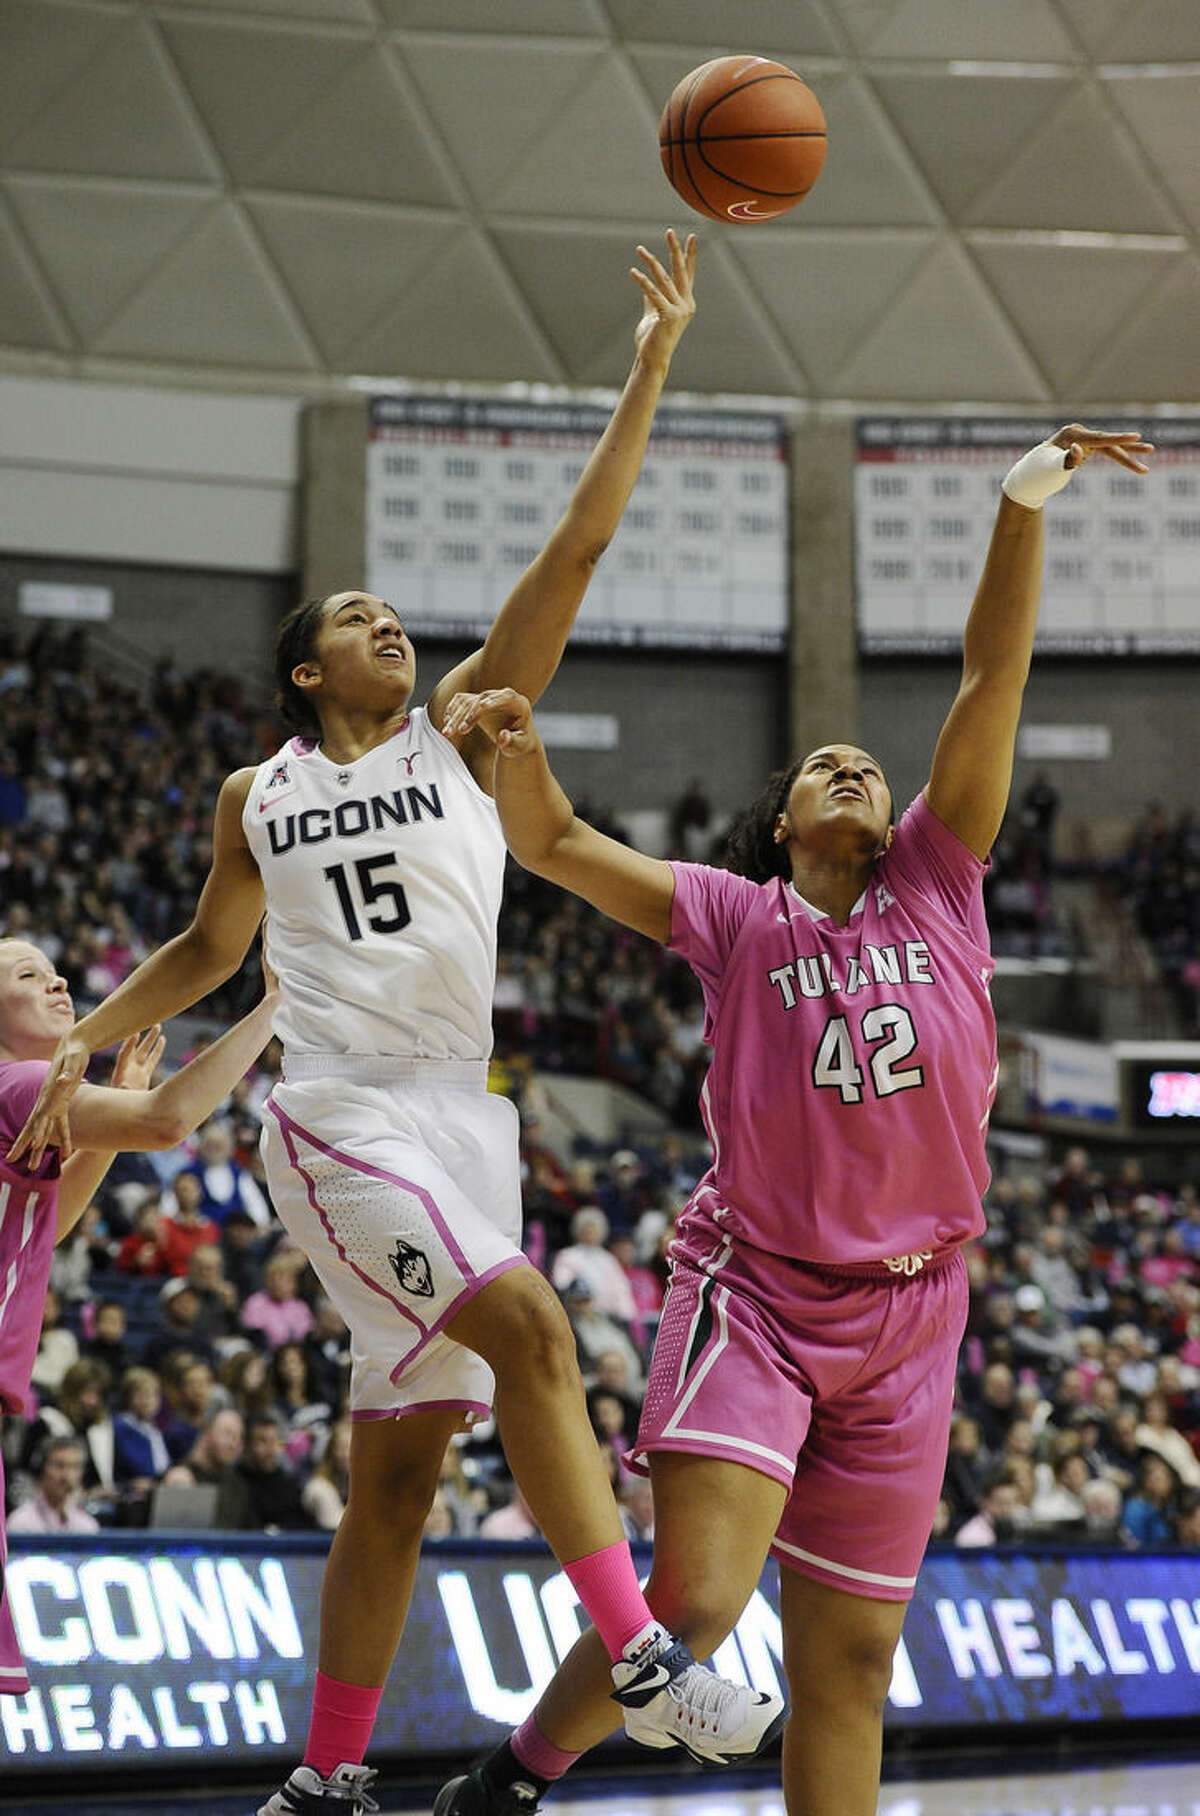 Connecticut's Gabby Williams, left, reaches for a loose ball against Tulane's Morgan Rogers, right, during the second half of an NCAA college basketball game, Saturday, Feb. 14, 2015, in Storrs, Conn. UConn won 87-39. (AP Photo/Jessica Hill)